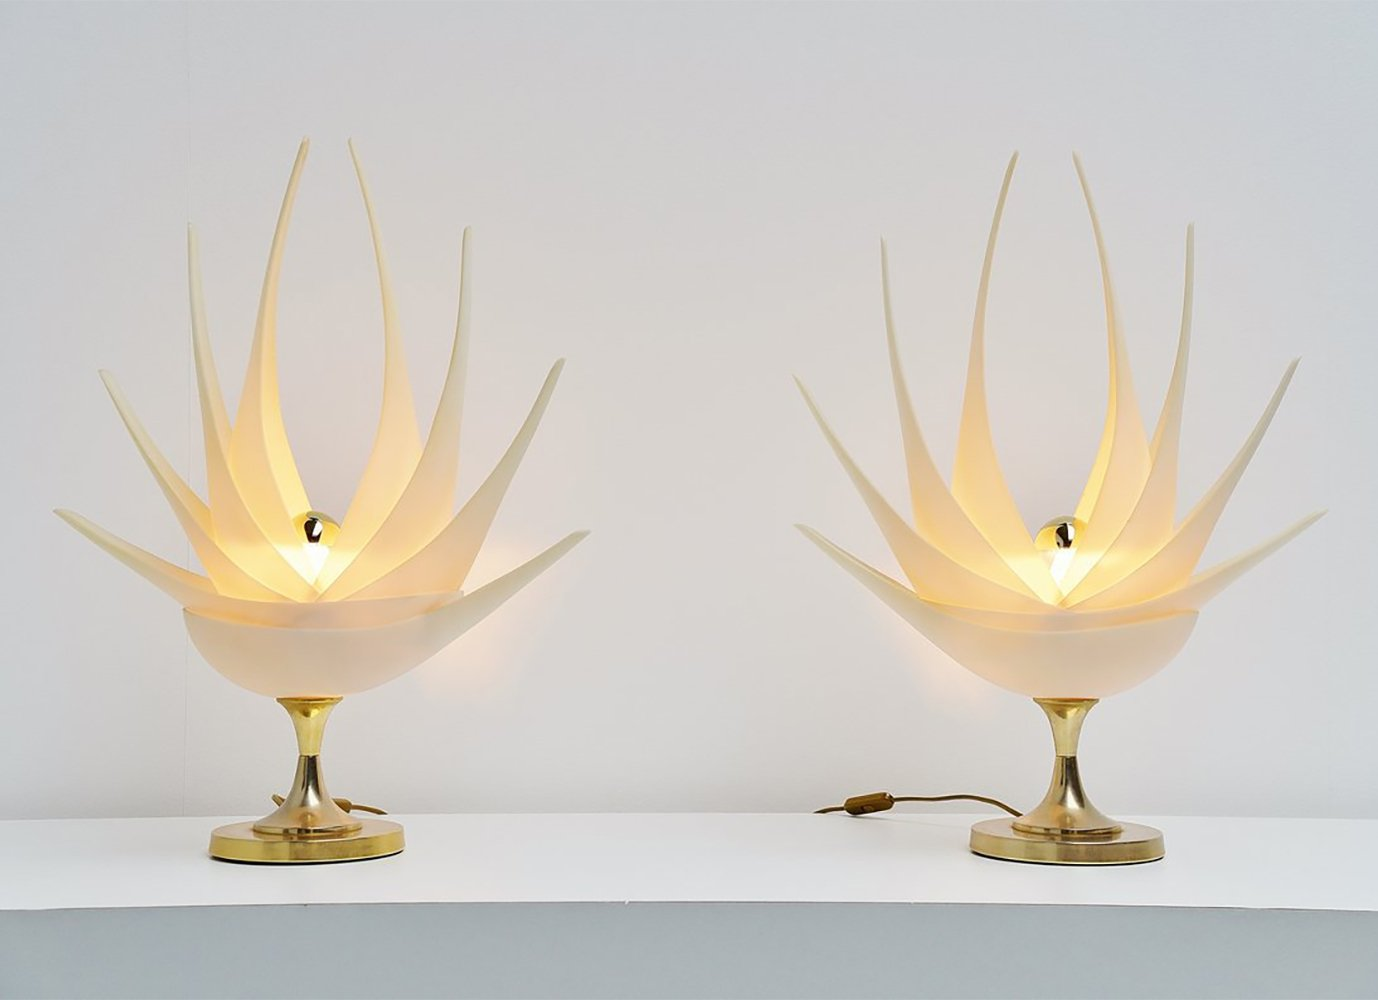 Maison Rougier flower shaped table lamps, France 1970